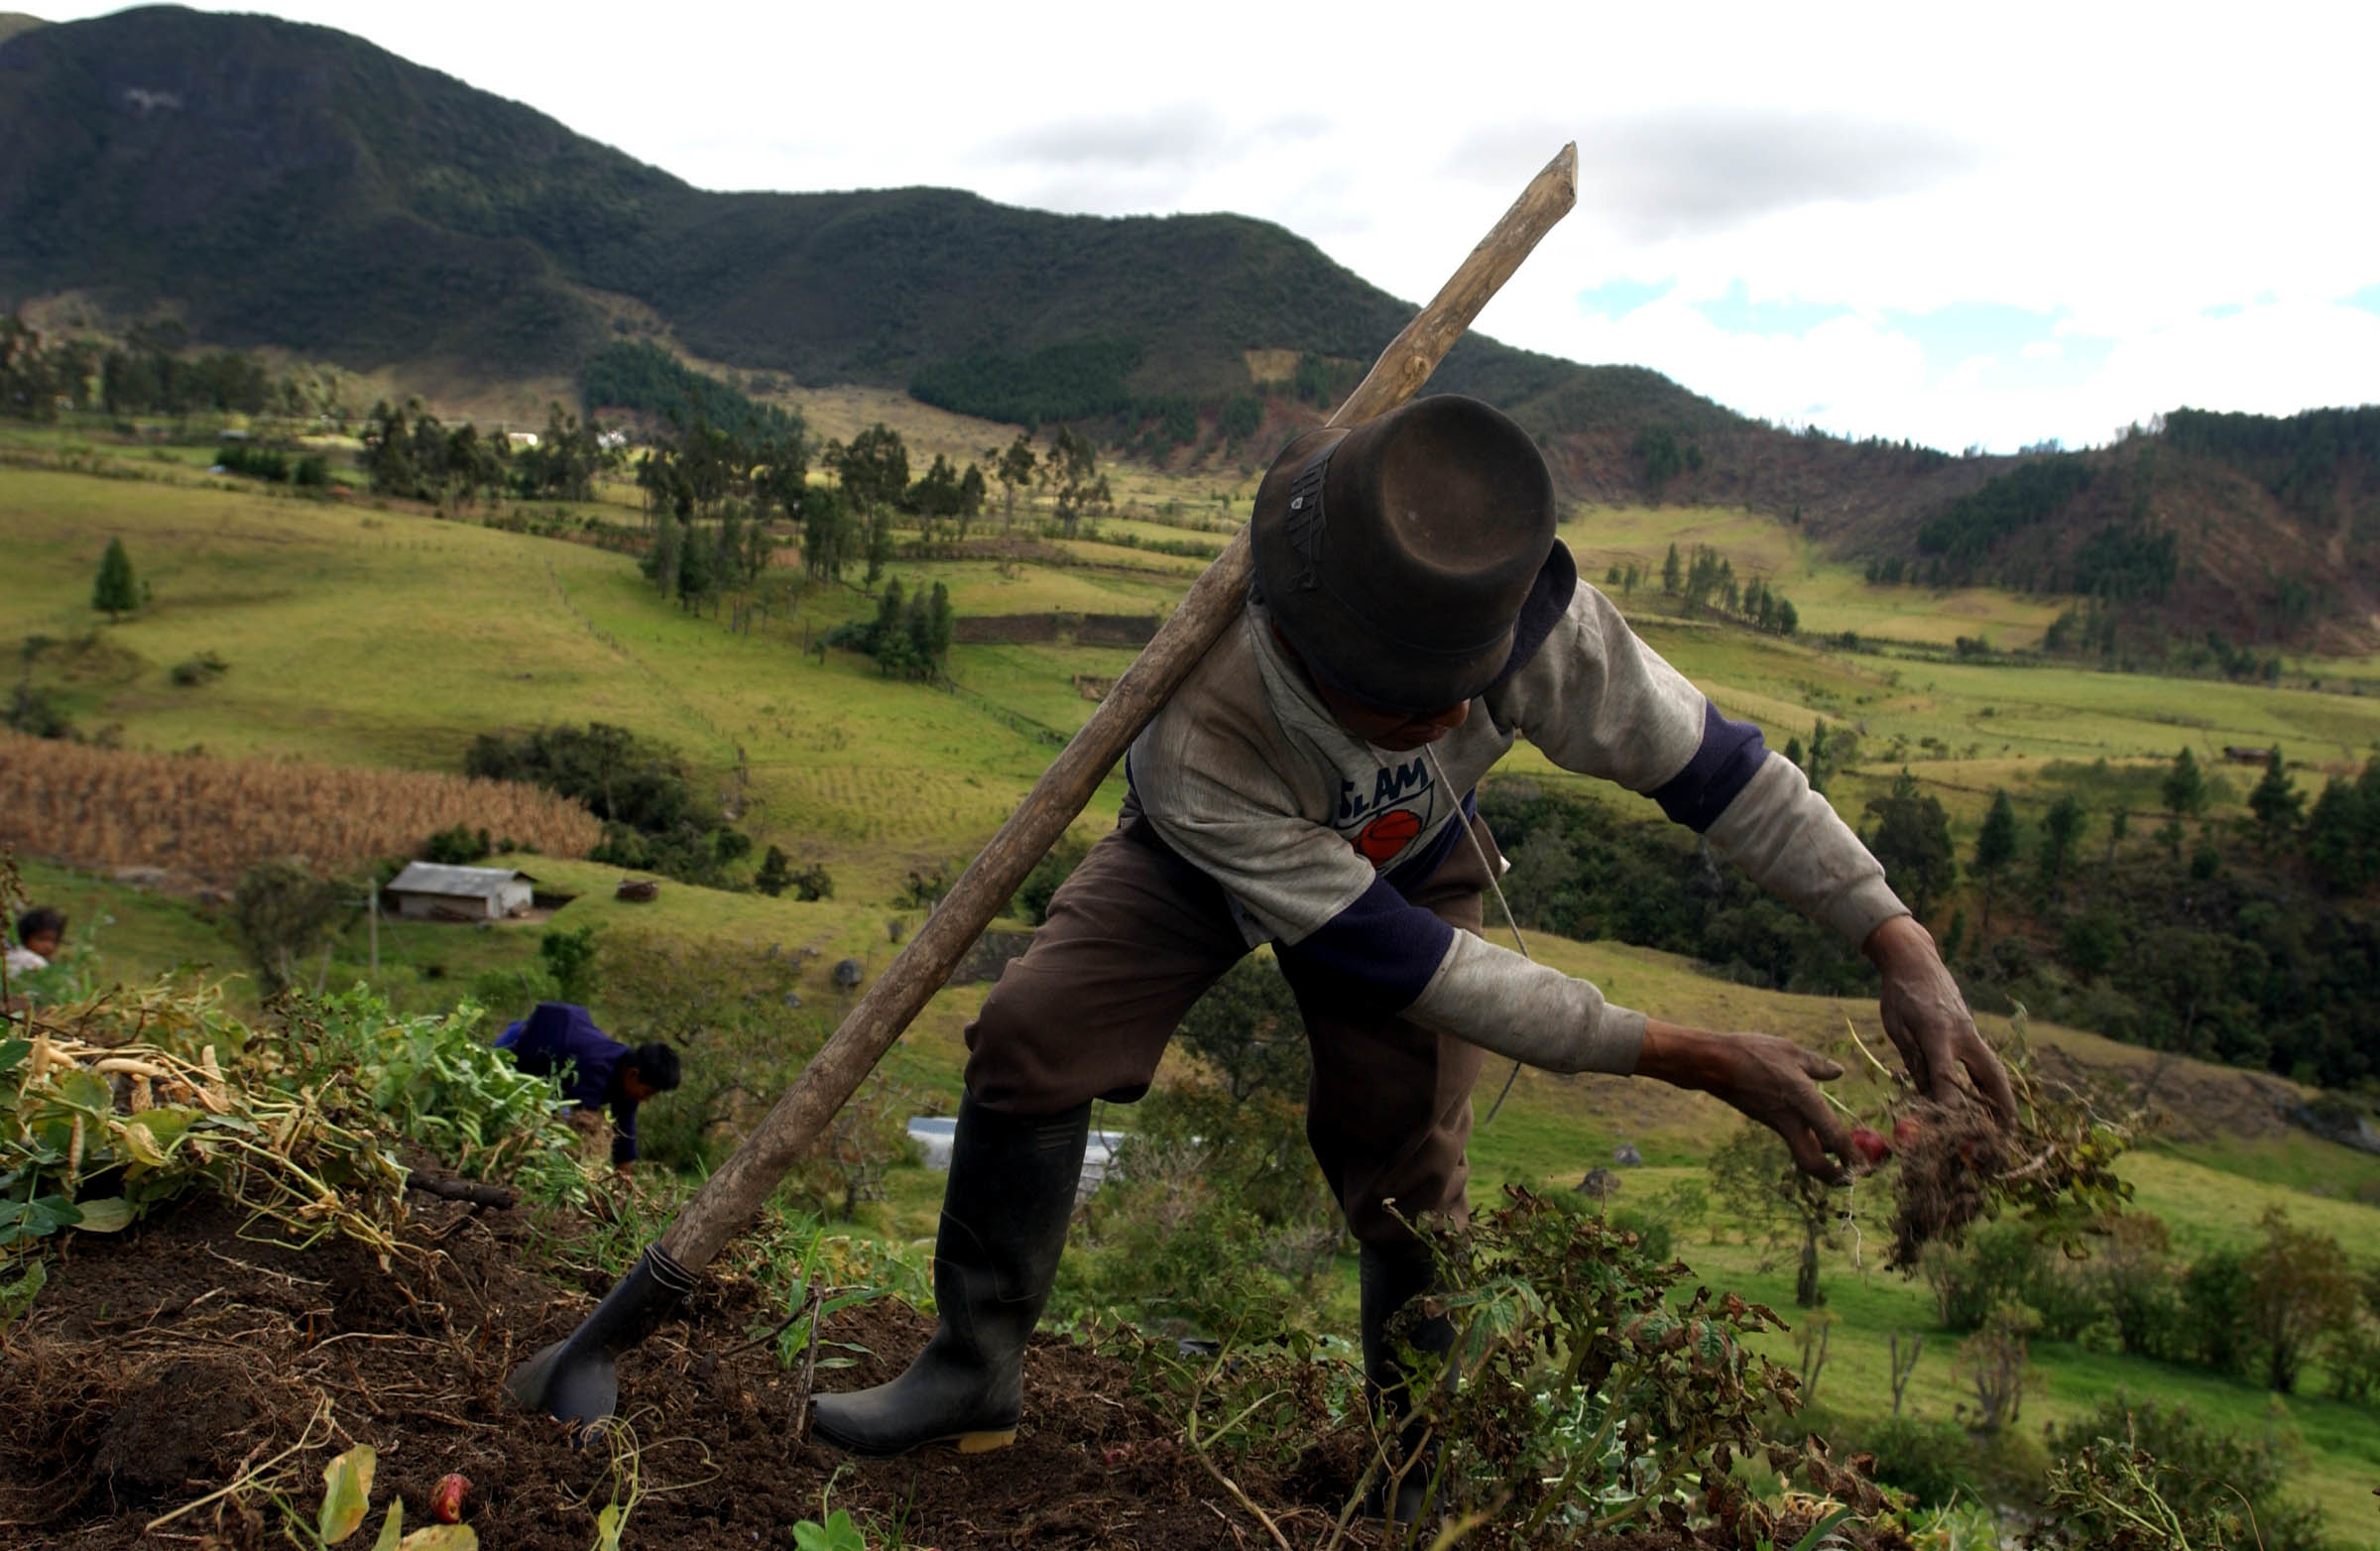 A Guambiano man harvests potatoes in the mountains outside Silvia, Cauca, Columbia. Credit: Ann Johansson/Corbis via Getty Images